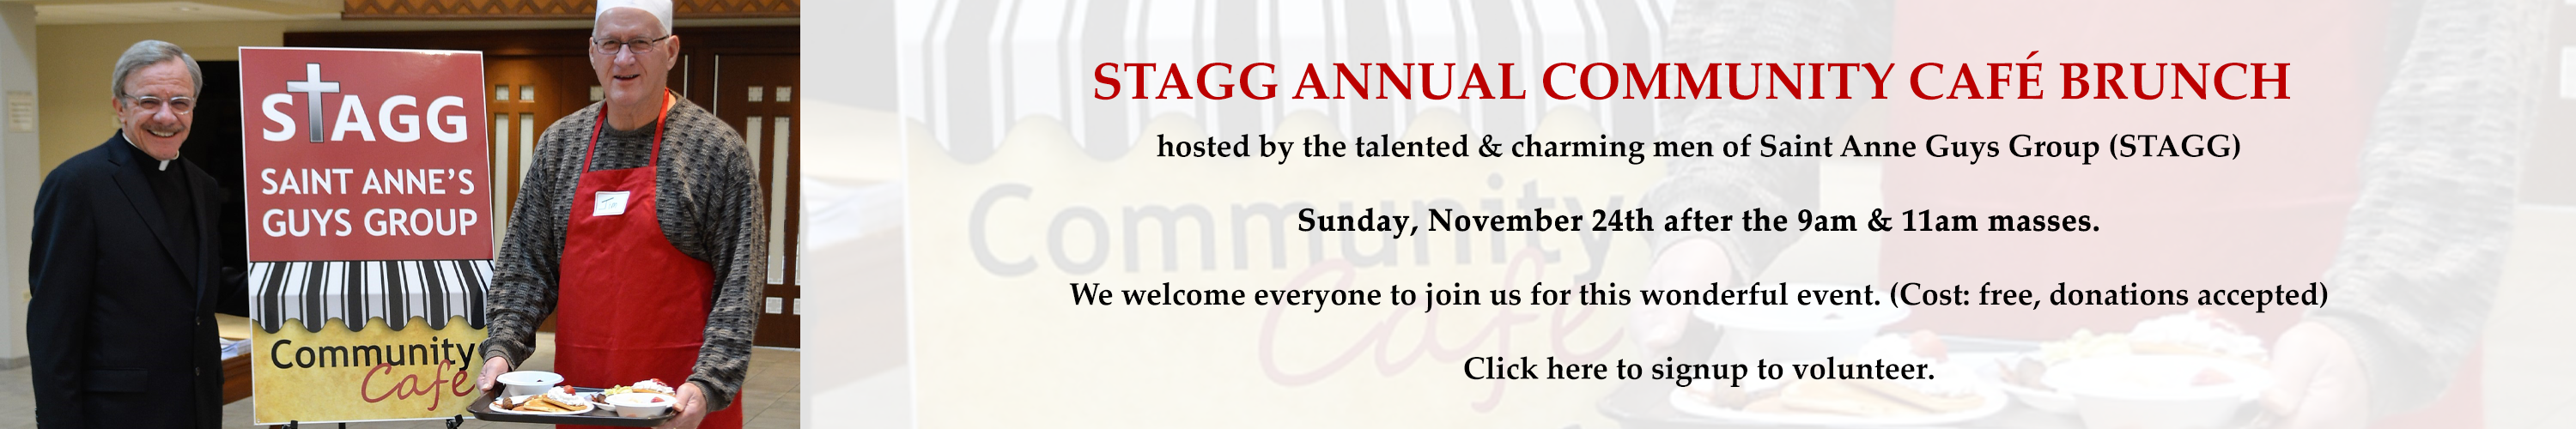 stagg-annual-community-cafe